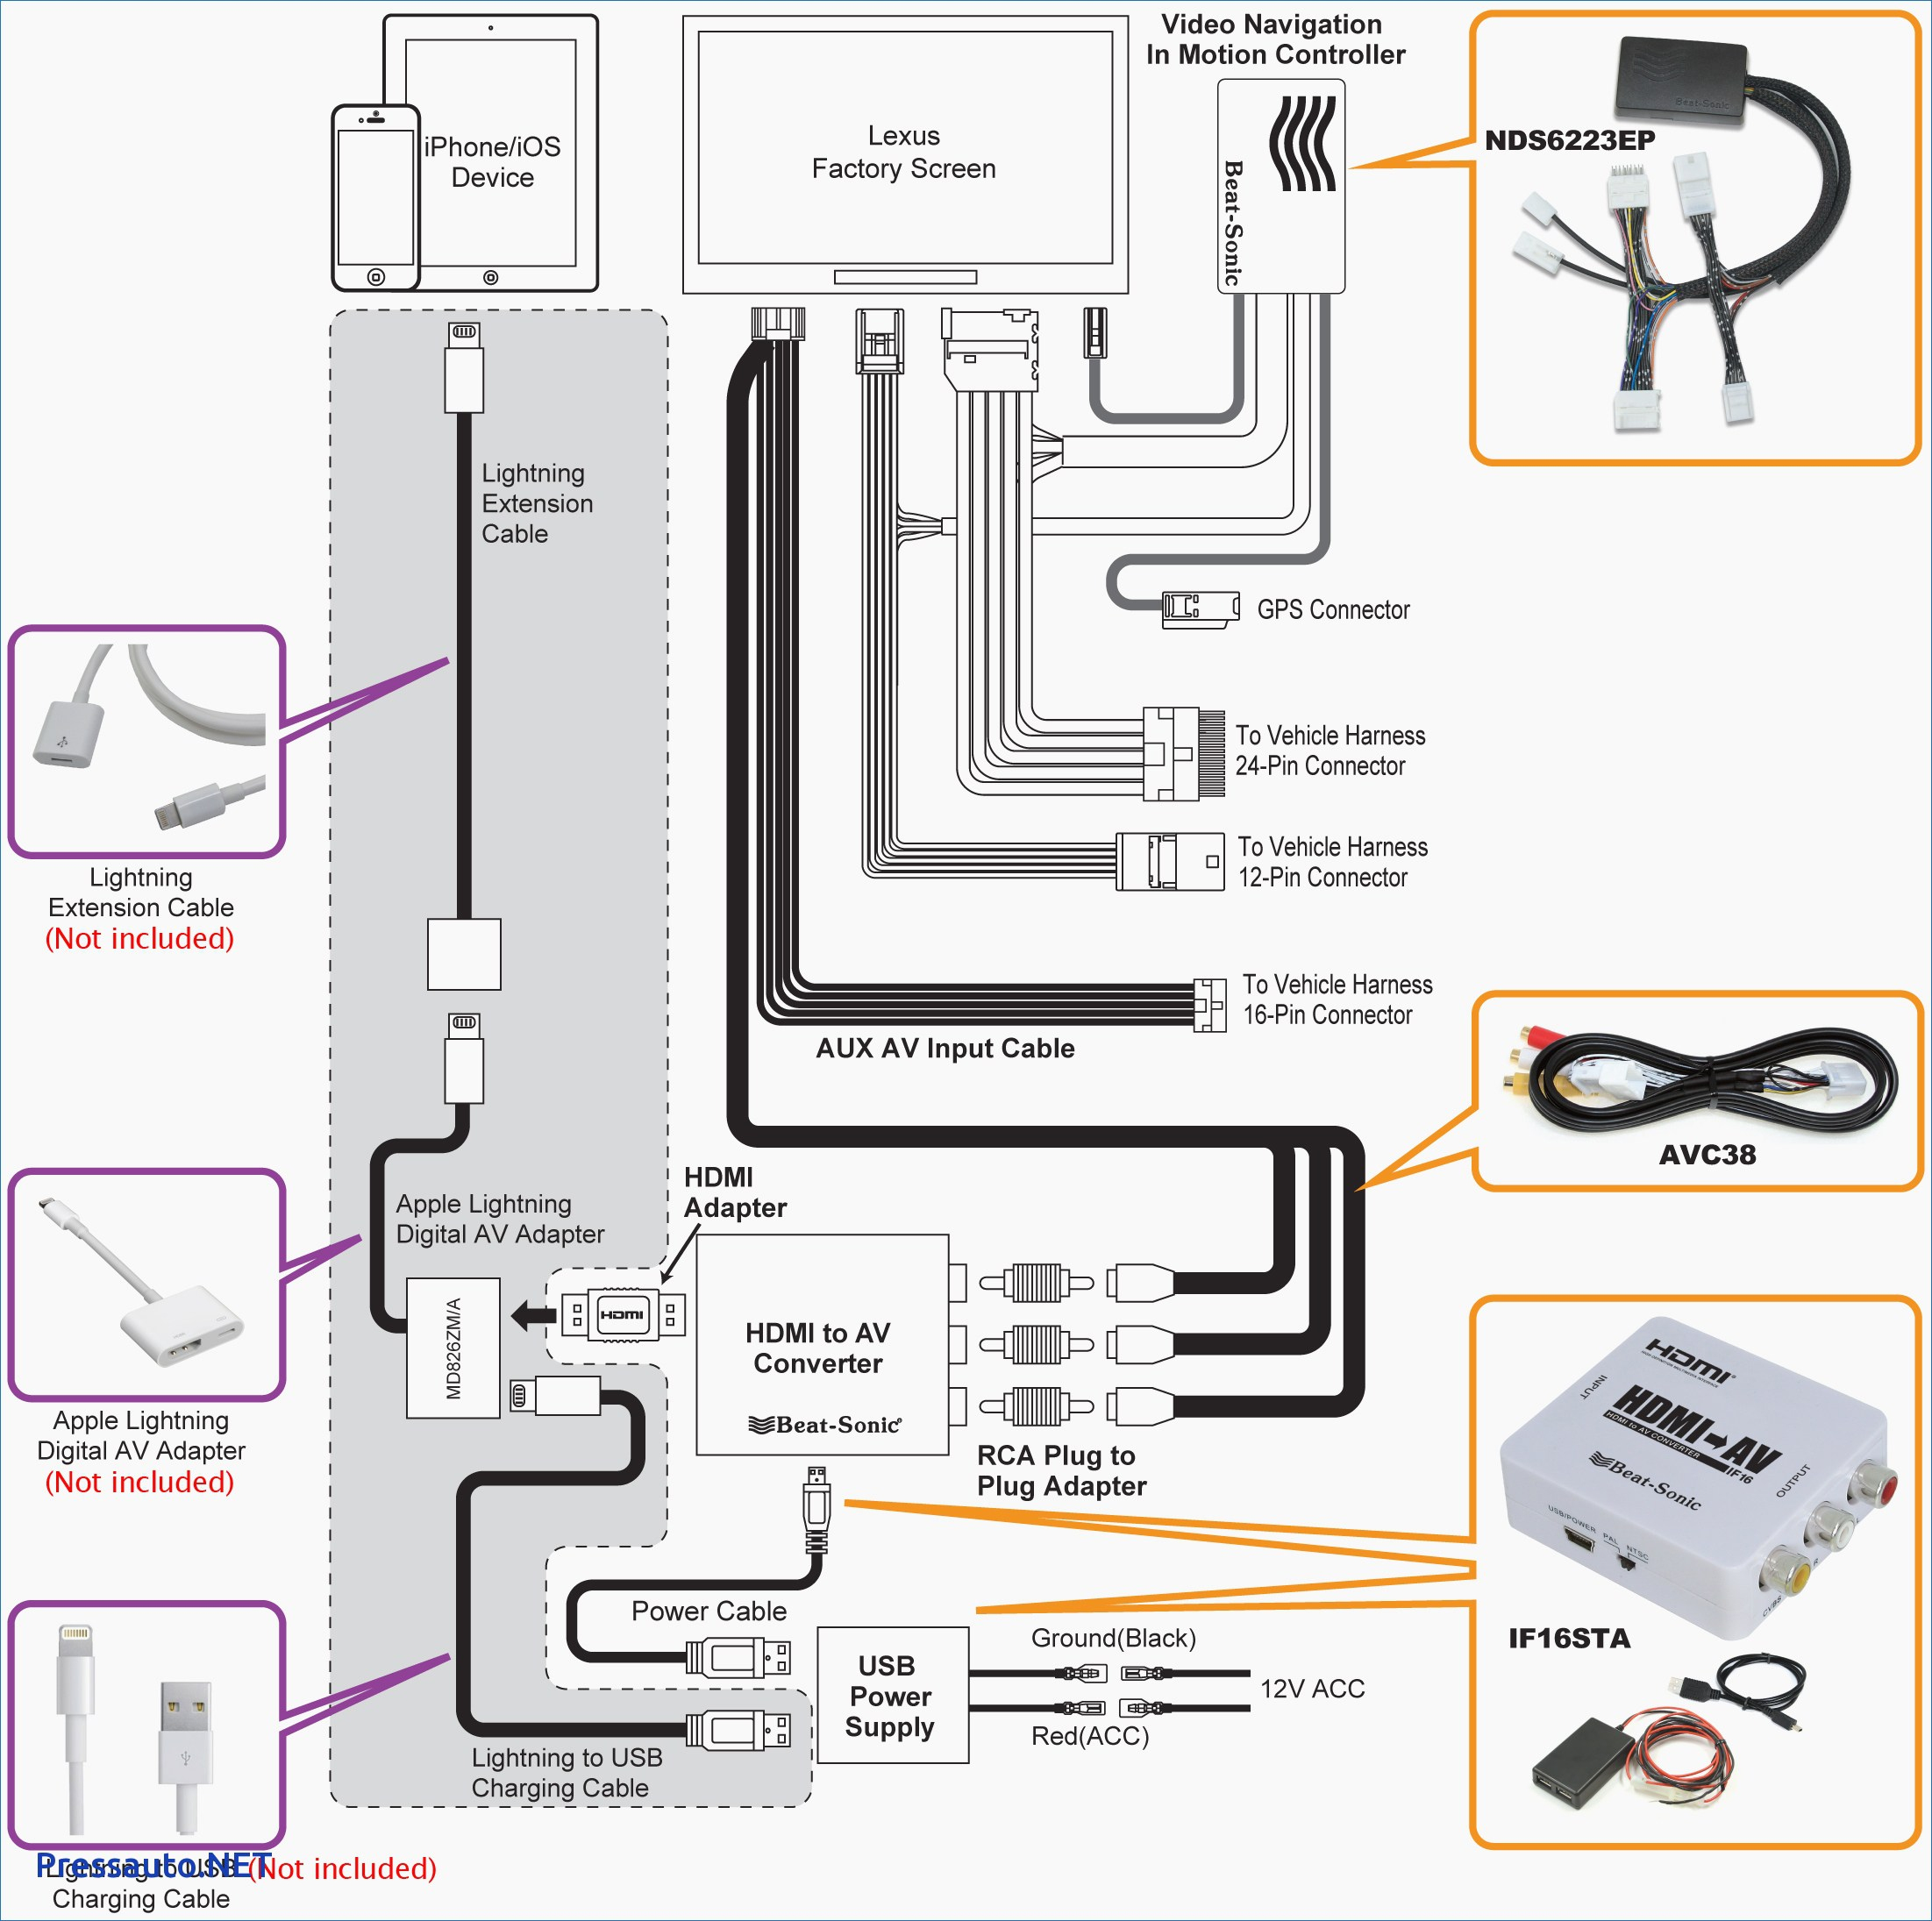 Av Wiring Diagrams For Ipod | Wiring Diagram - Car Charger Usb Wiring Diagram